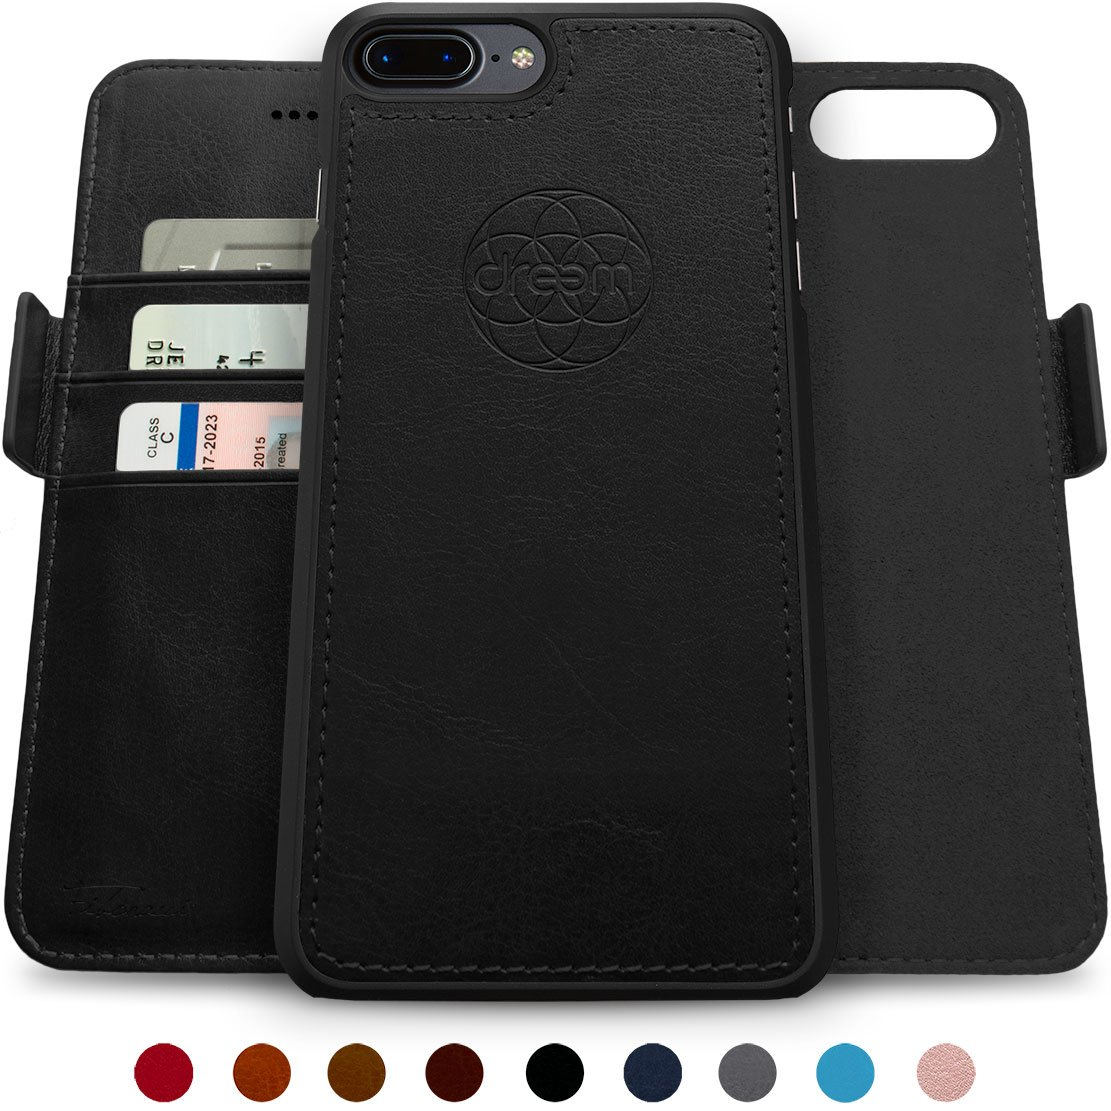 Dreem Fibonacci 2-in-1 Wallet-Case for iPhone 8-Plus & 7-Plus, Magnetic Detachable Shock-Proof TPU Slim-Case, Wireless Charge, RFID Protection, 2-Way Stand, Luxury Vegan Leather, Gift-Box - Black by dreem